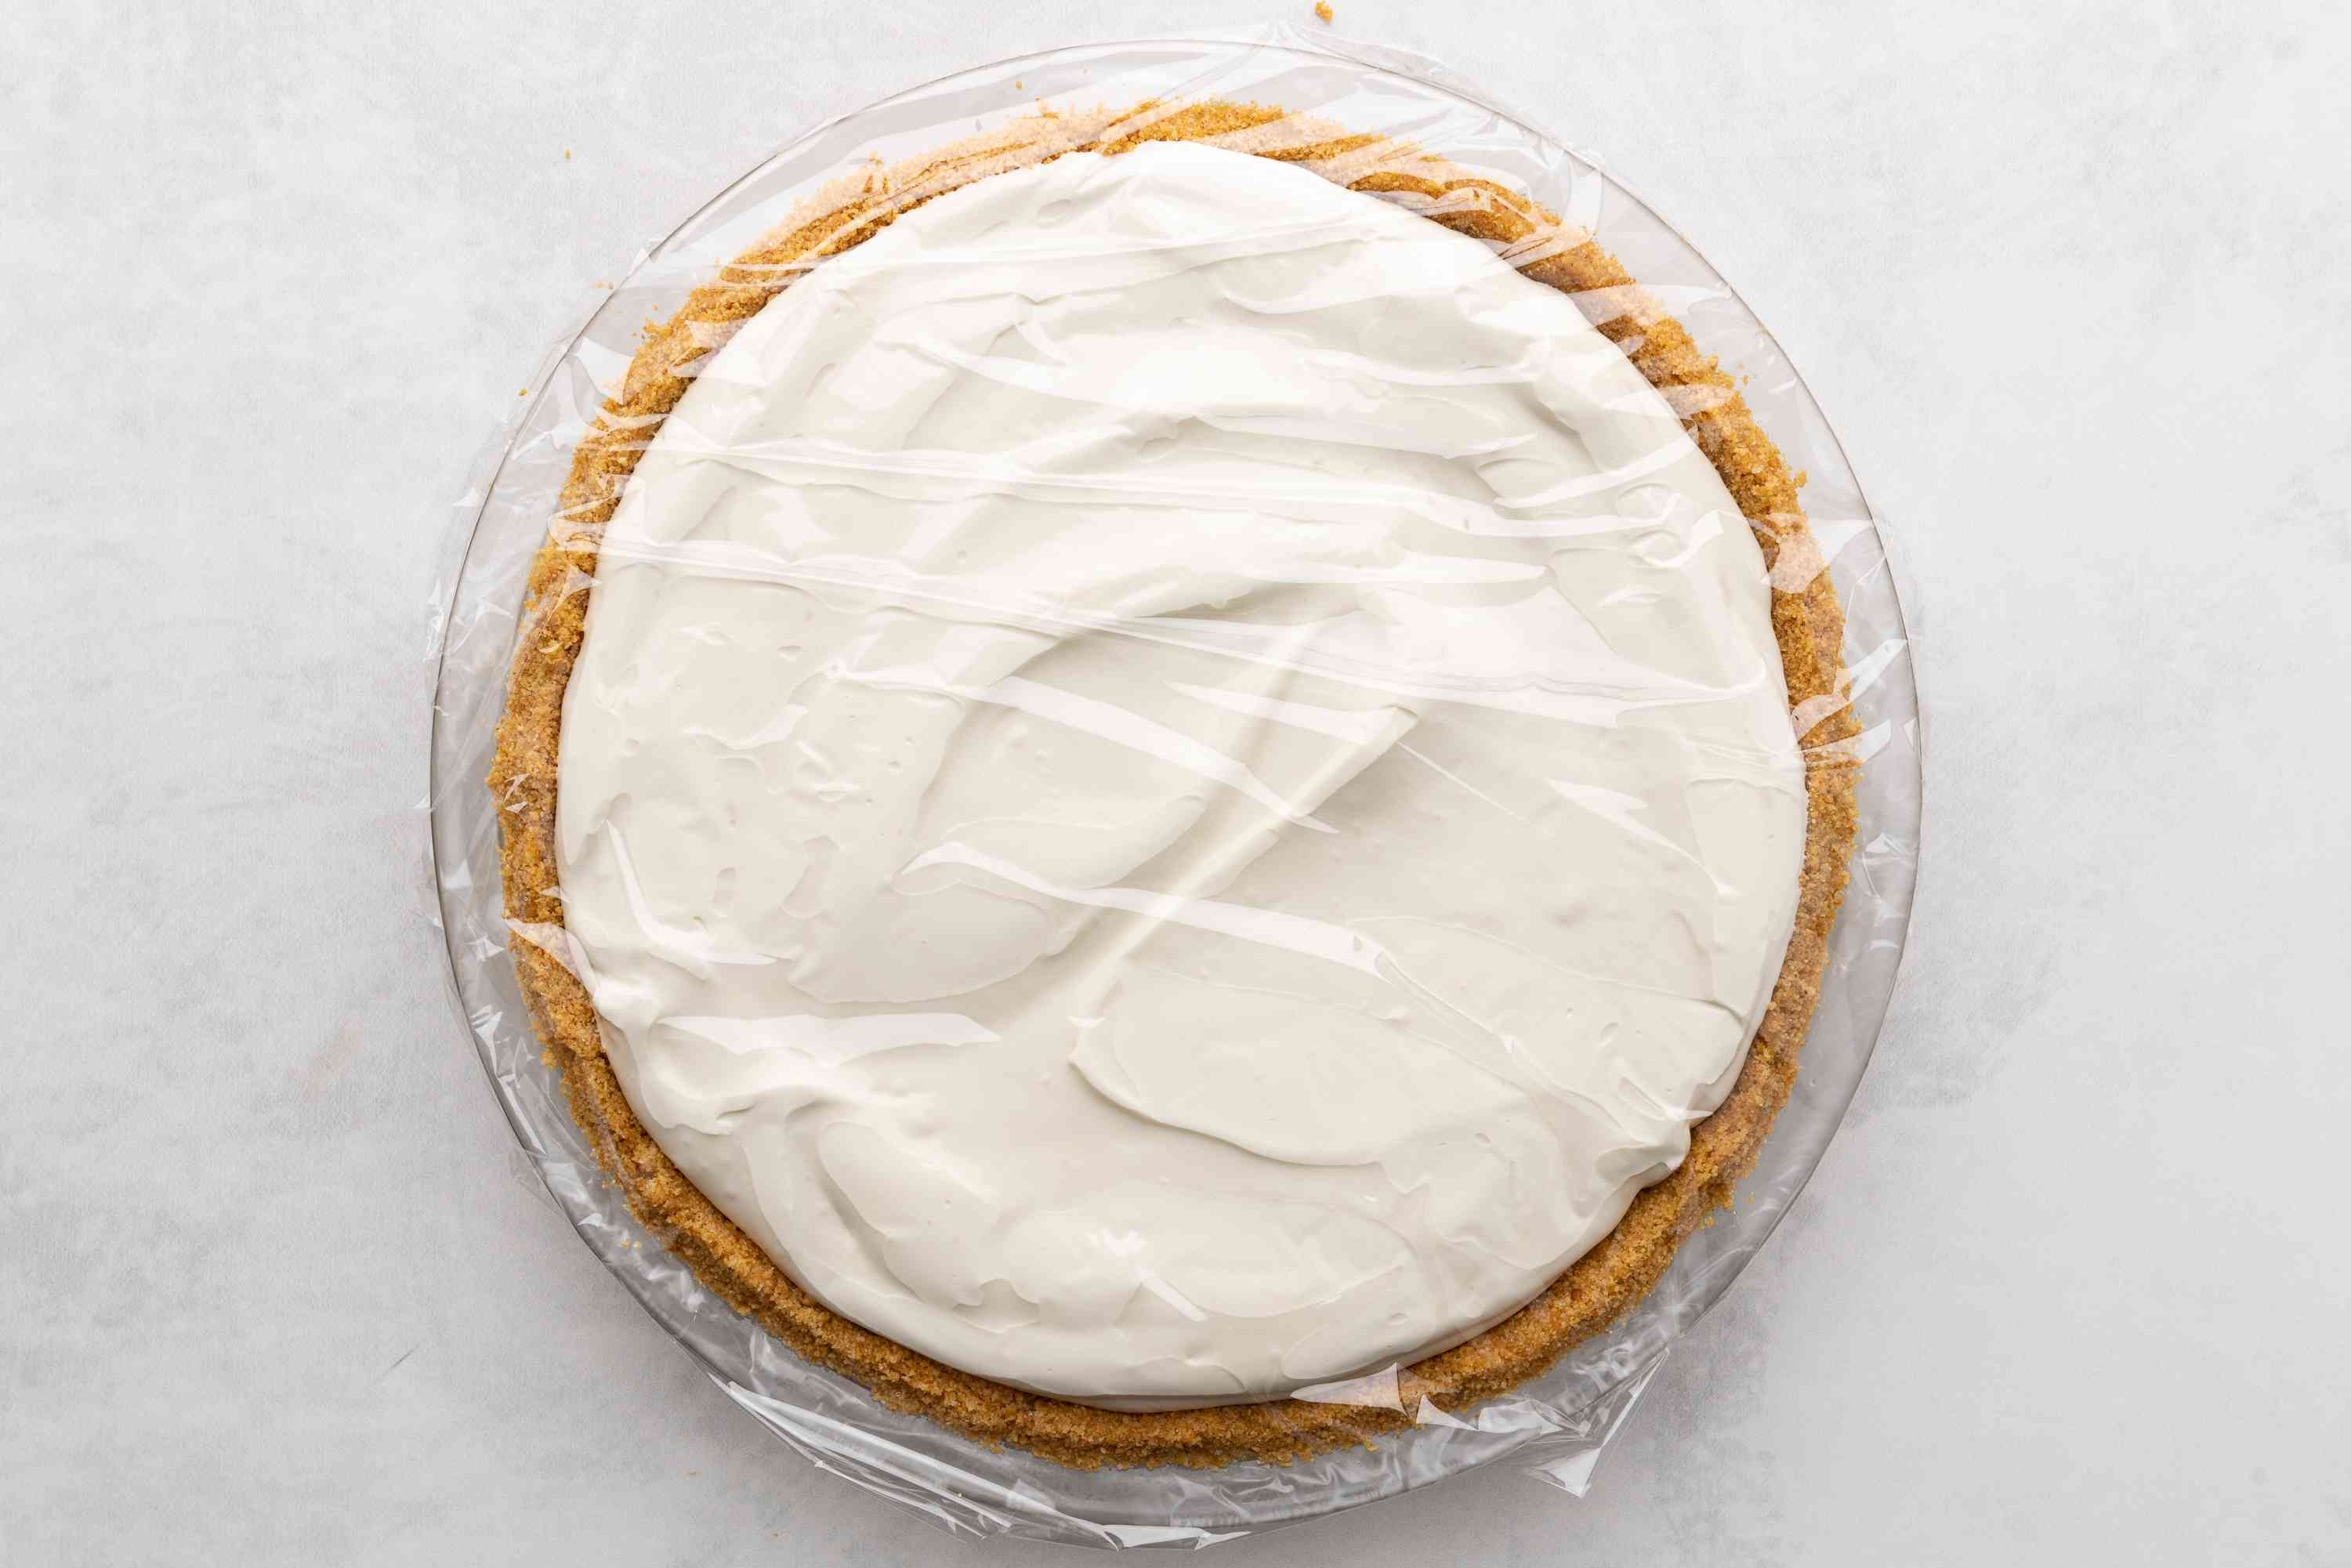 add pie filling into the crust and cover with plastic wrap